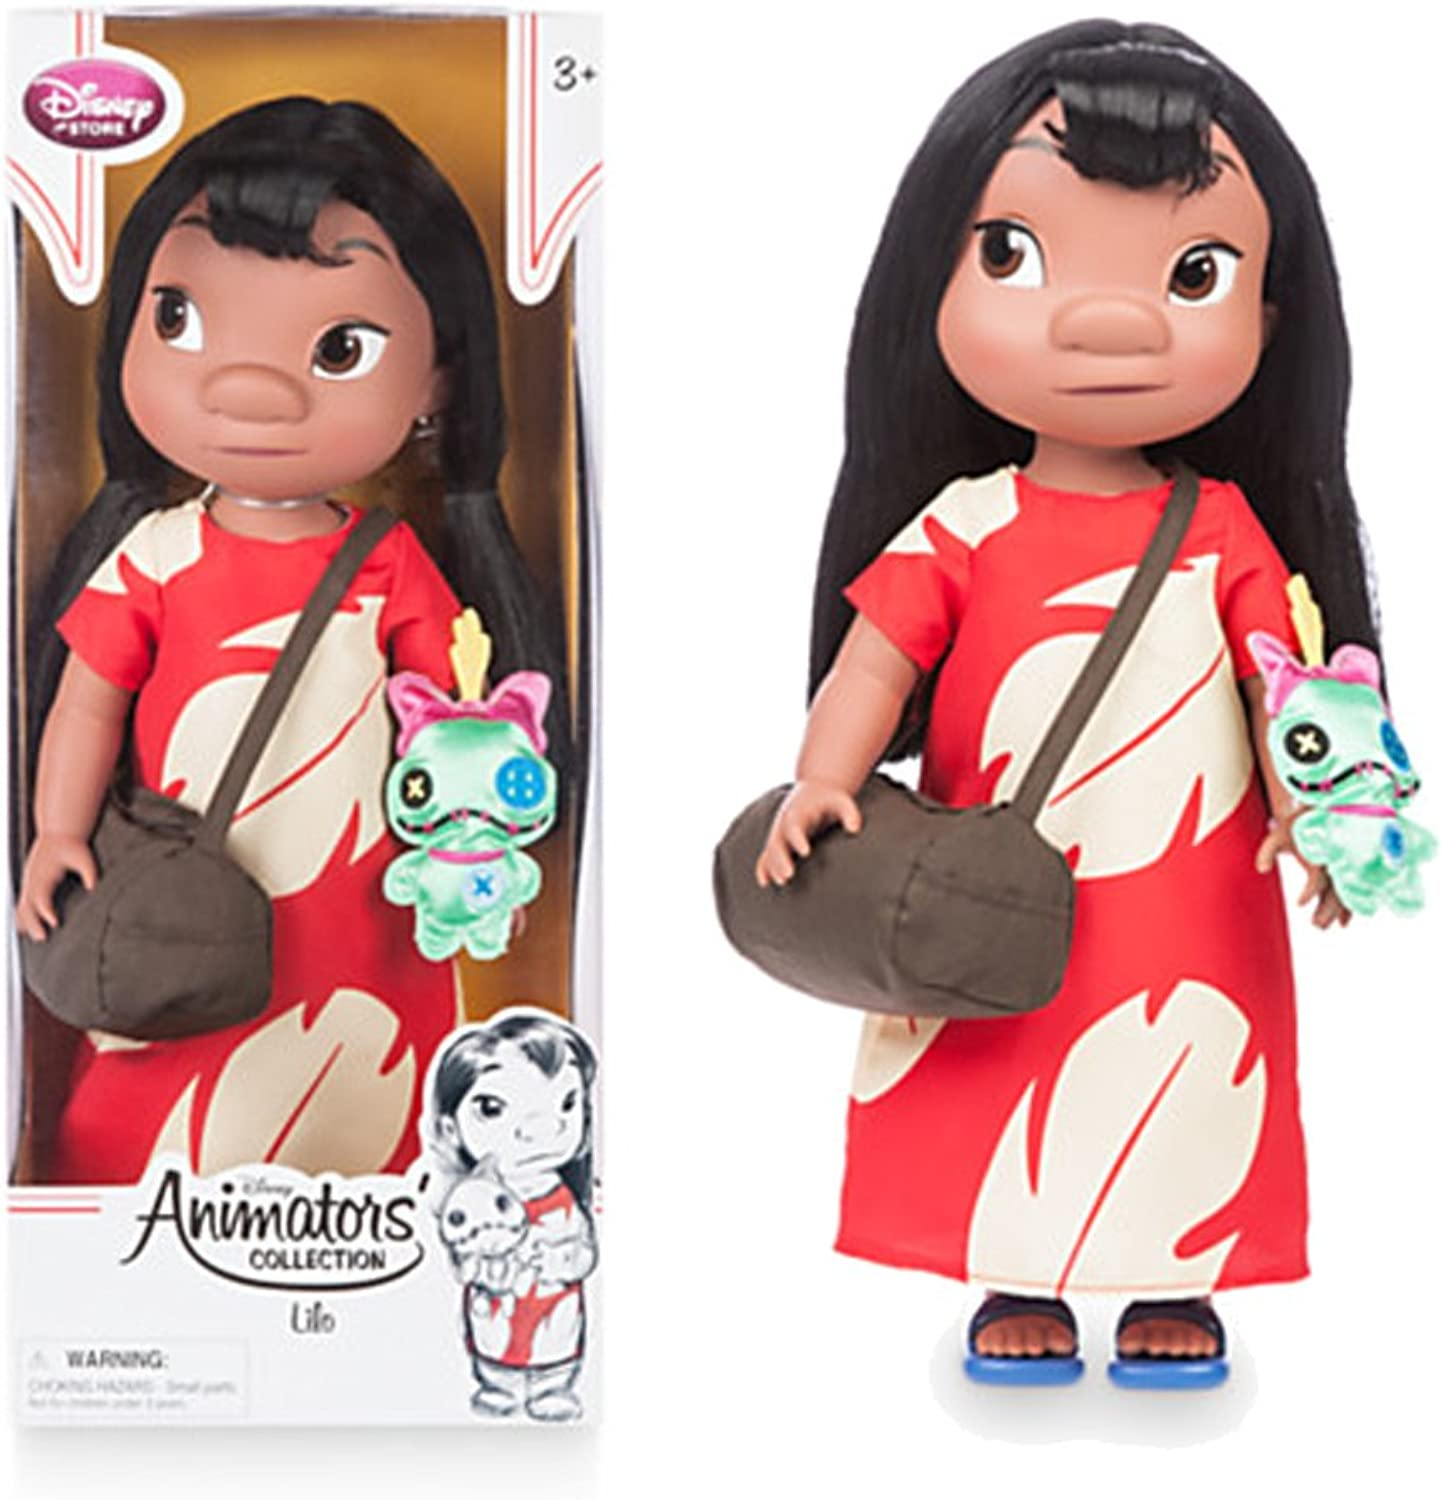 Disney Animators' Collection Lilo Doll - Lilo and Stitch - 16'' - New by Disney